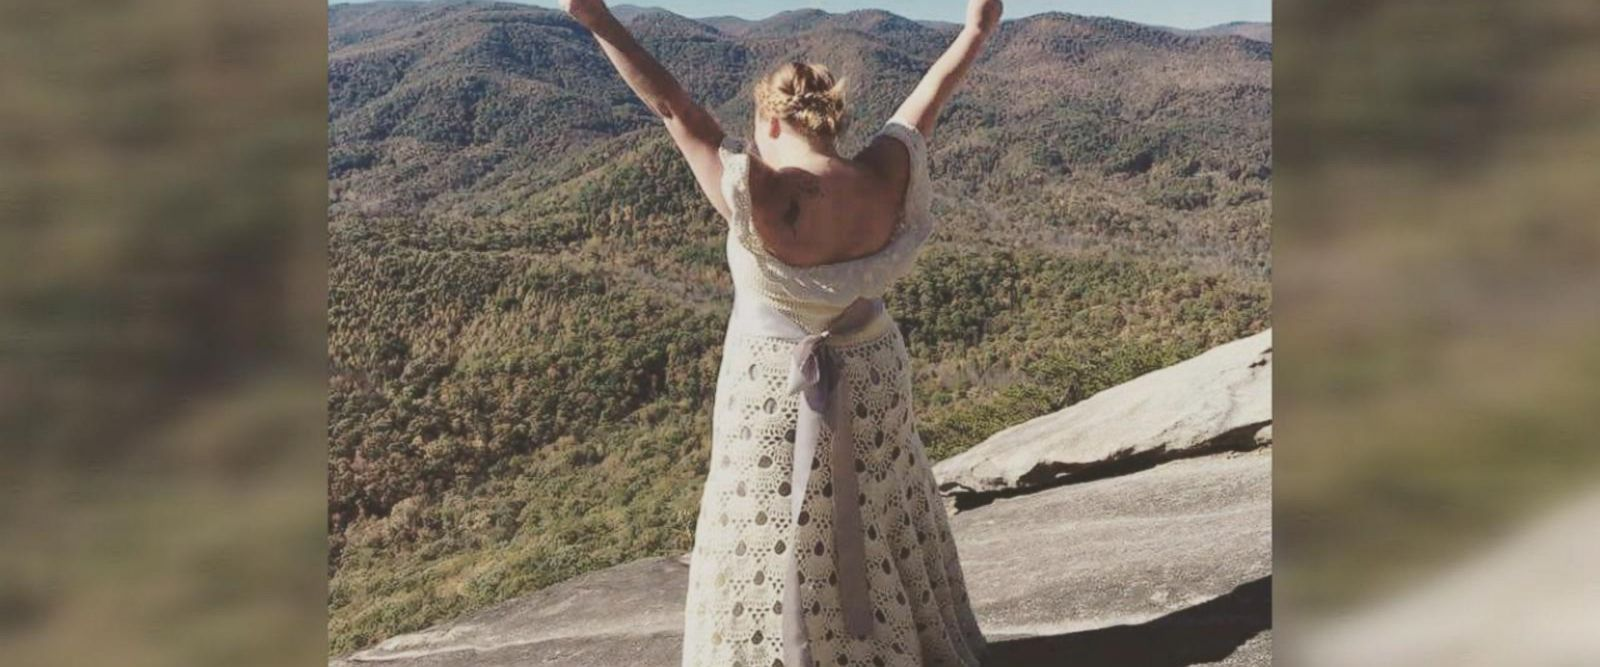 Clara Orland got married on top of Looking Glass Rock in North Carolina in her DIY gown that took four months to make.